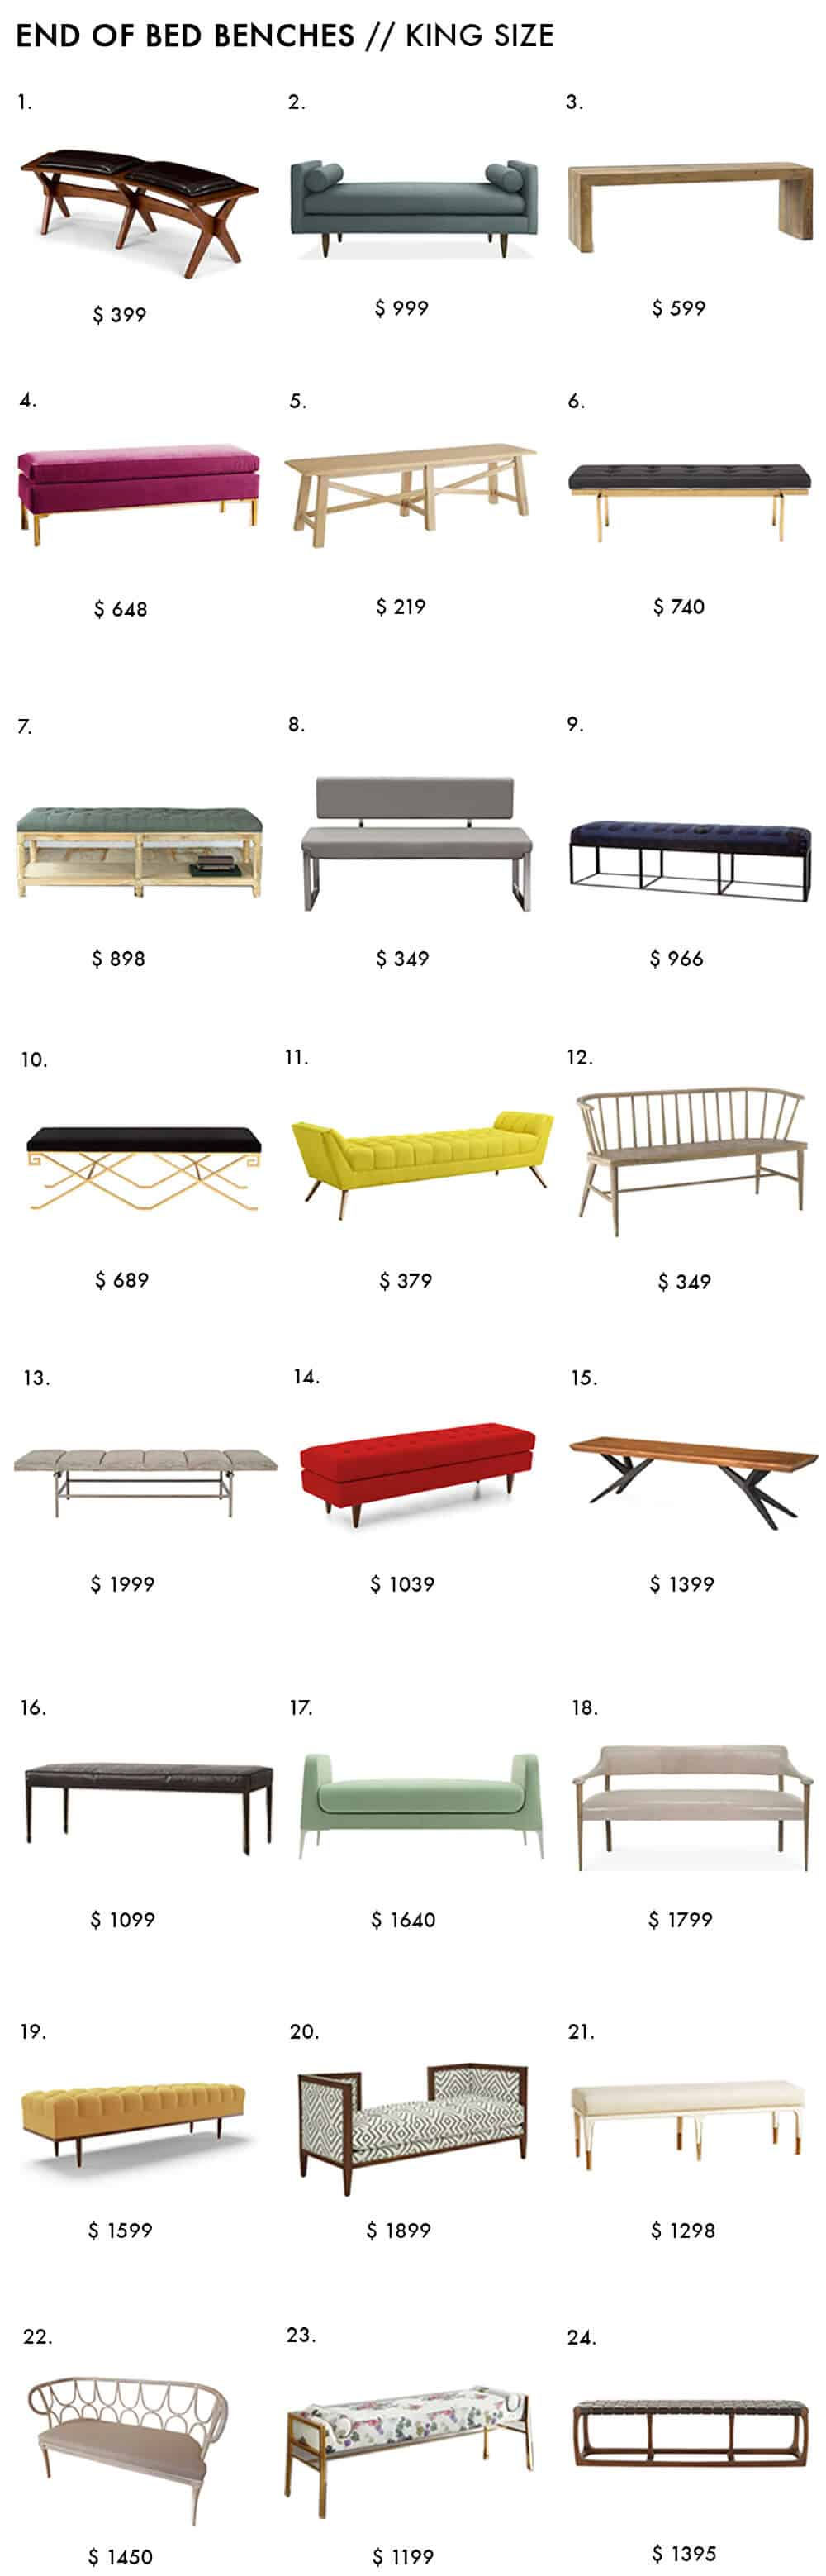 End of Bed Bench Roundup Emily Henderson Bedroom Design King Size